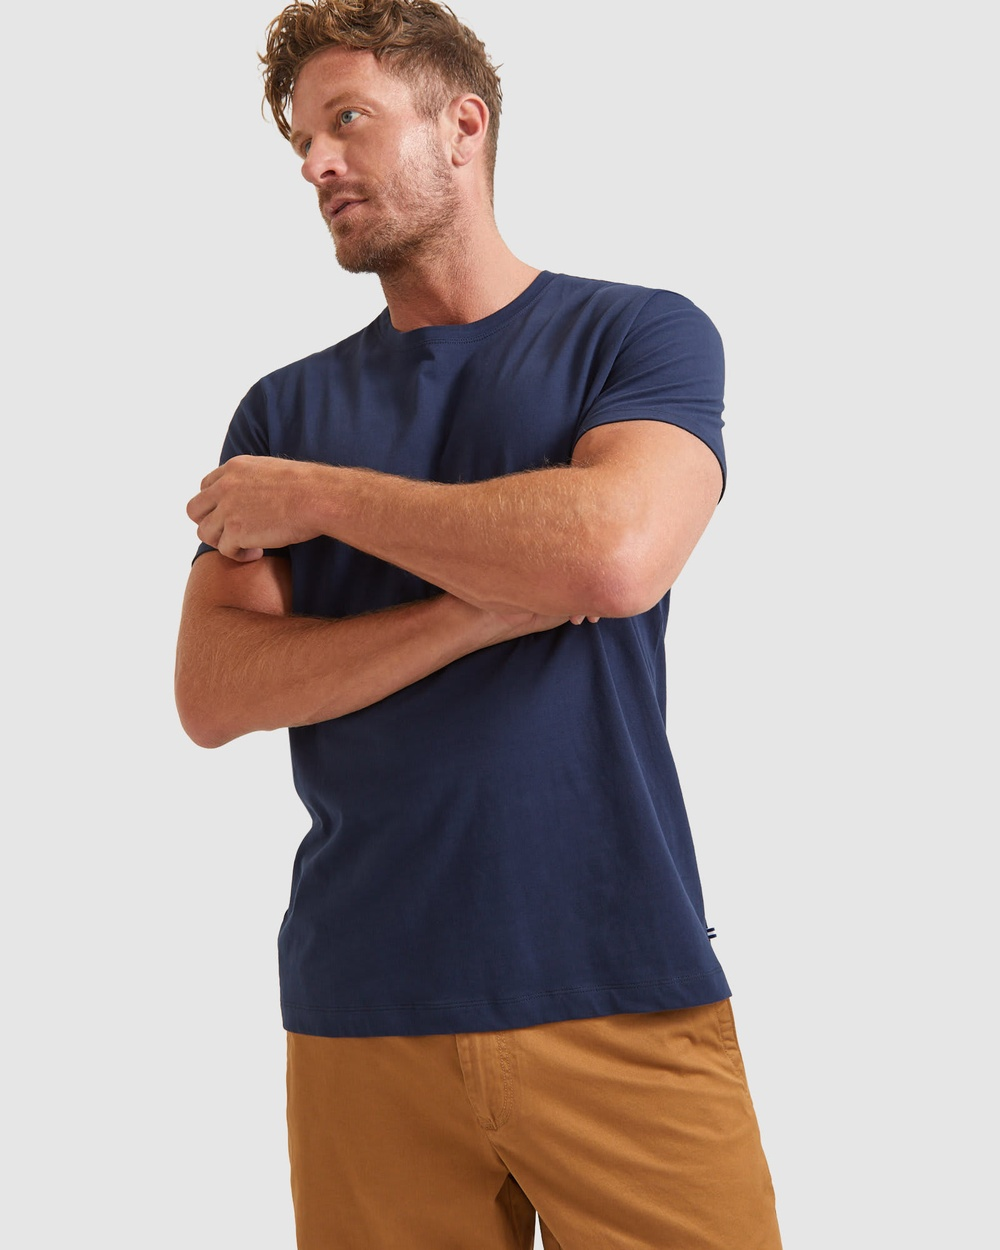 Sportscraft - Supersoft Tee - T-Shirts & Singlets (navy) Supersoft Tee